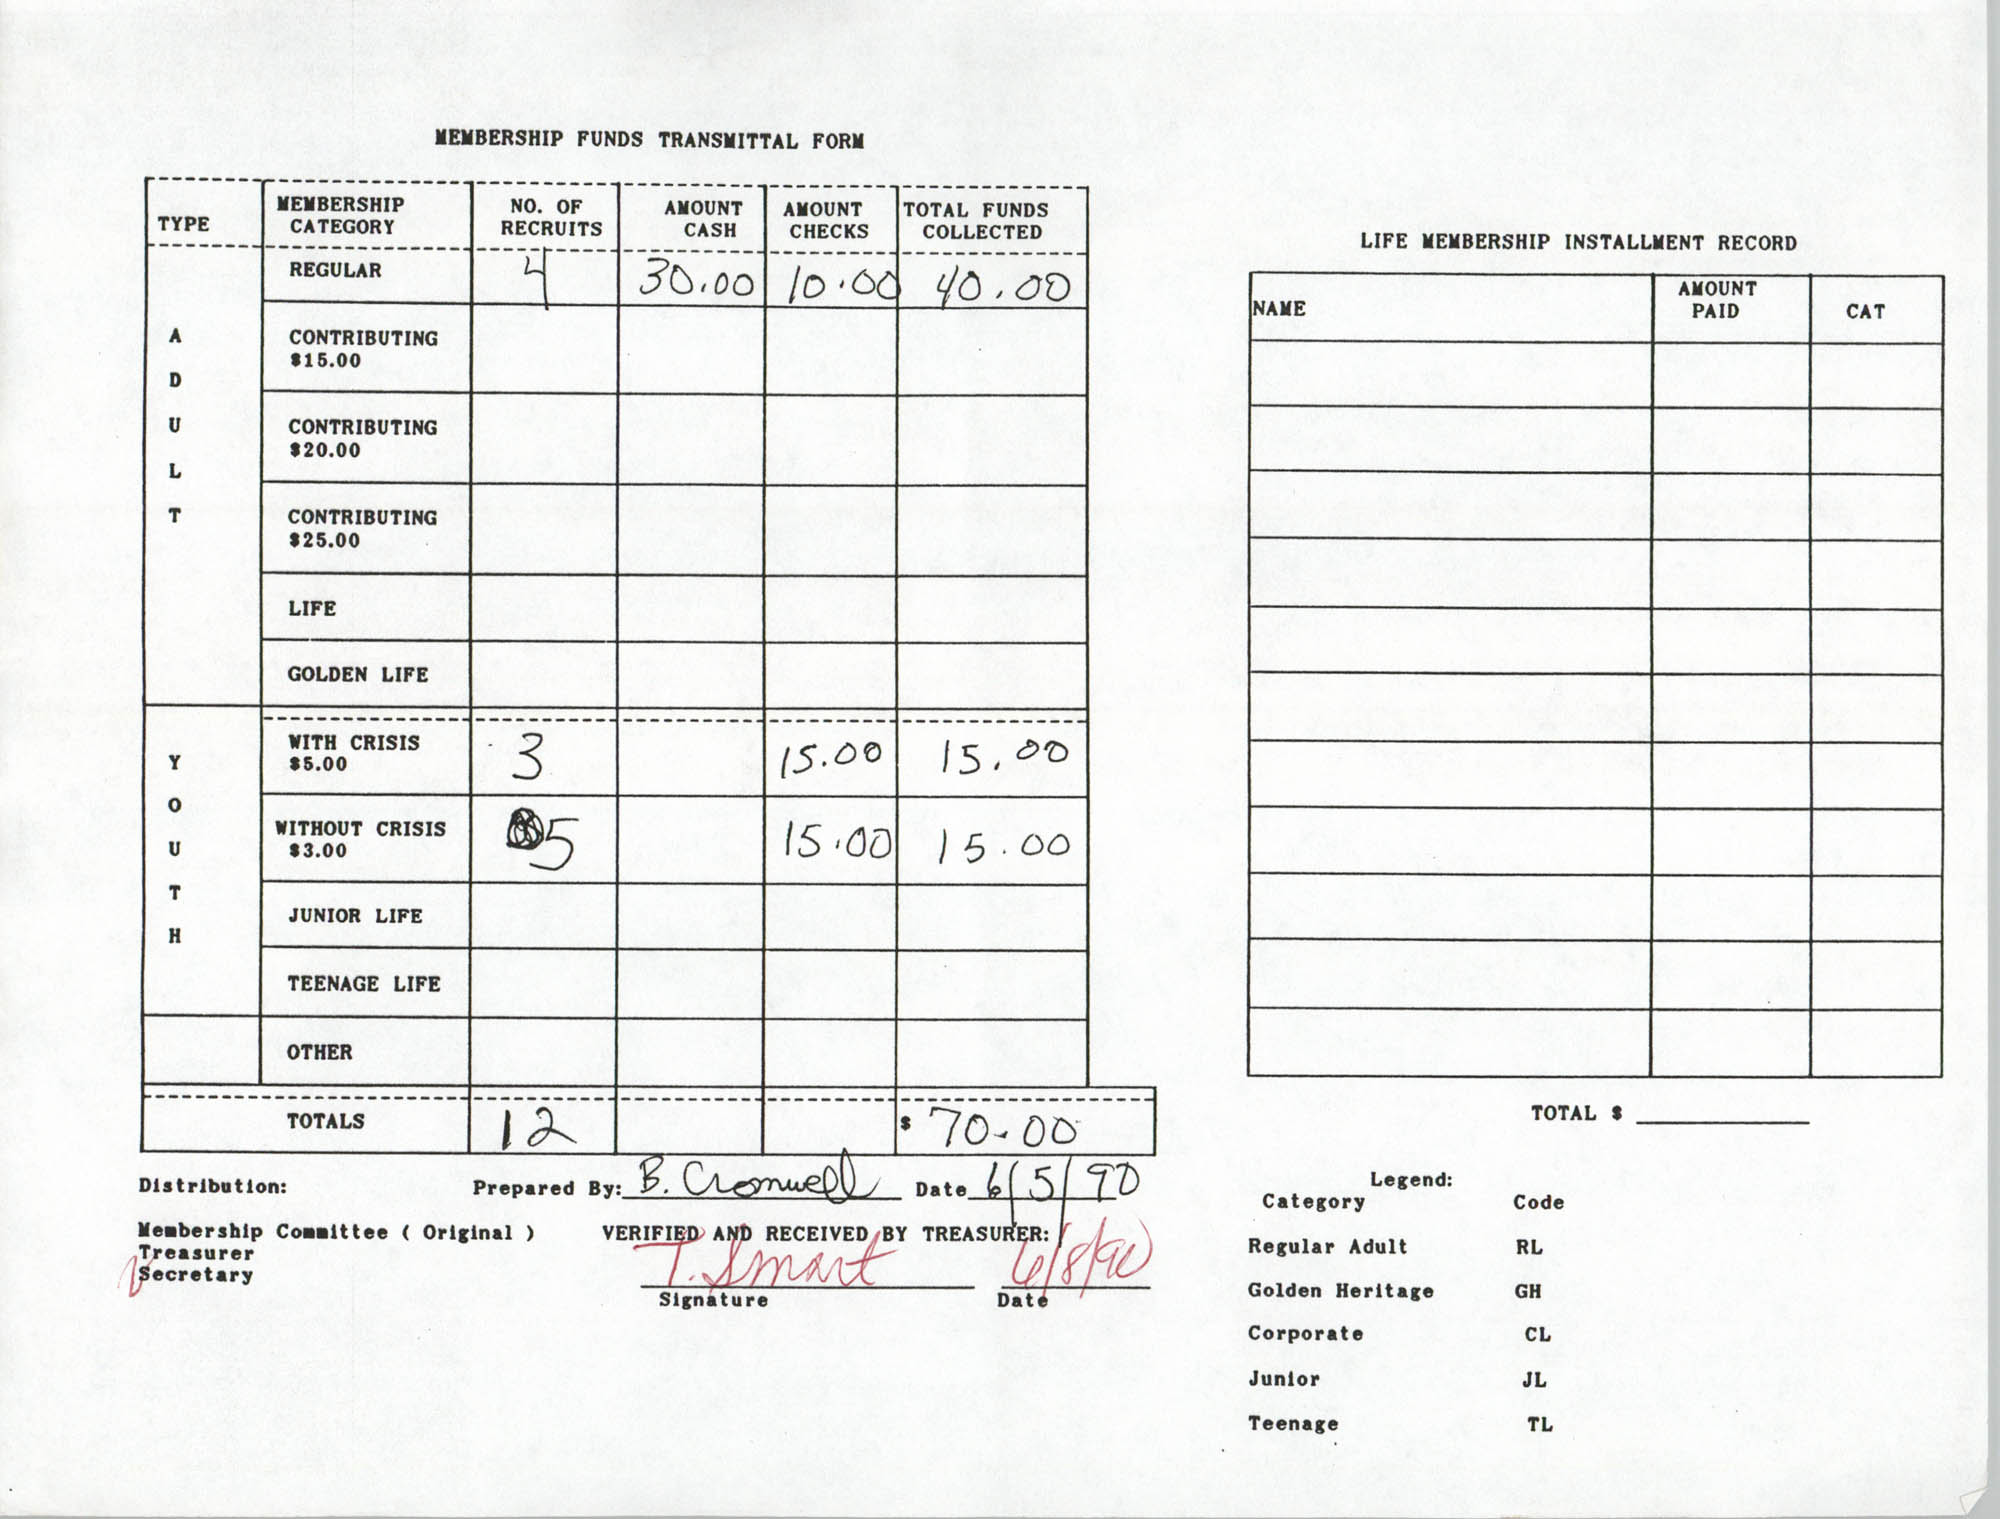 Charleston Branch of the NAACP Funds Transmittal Forms, June 1990, Page 1